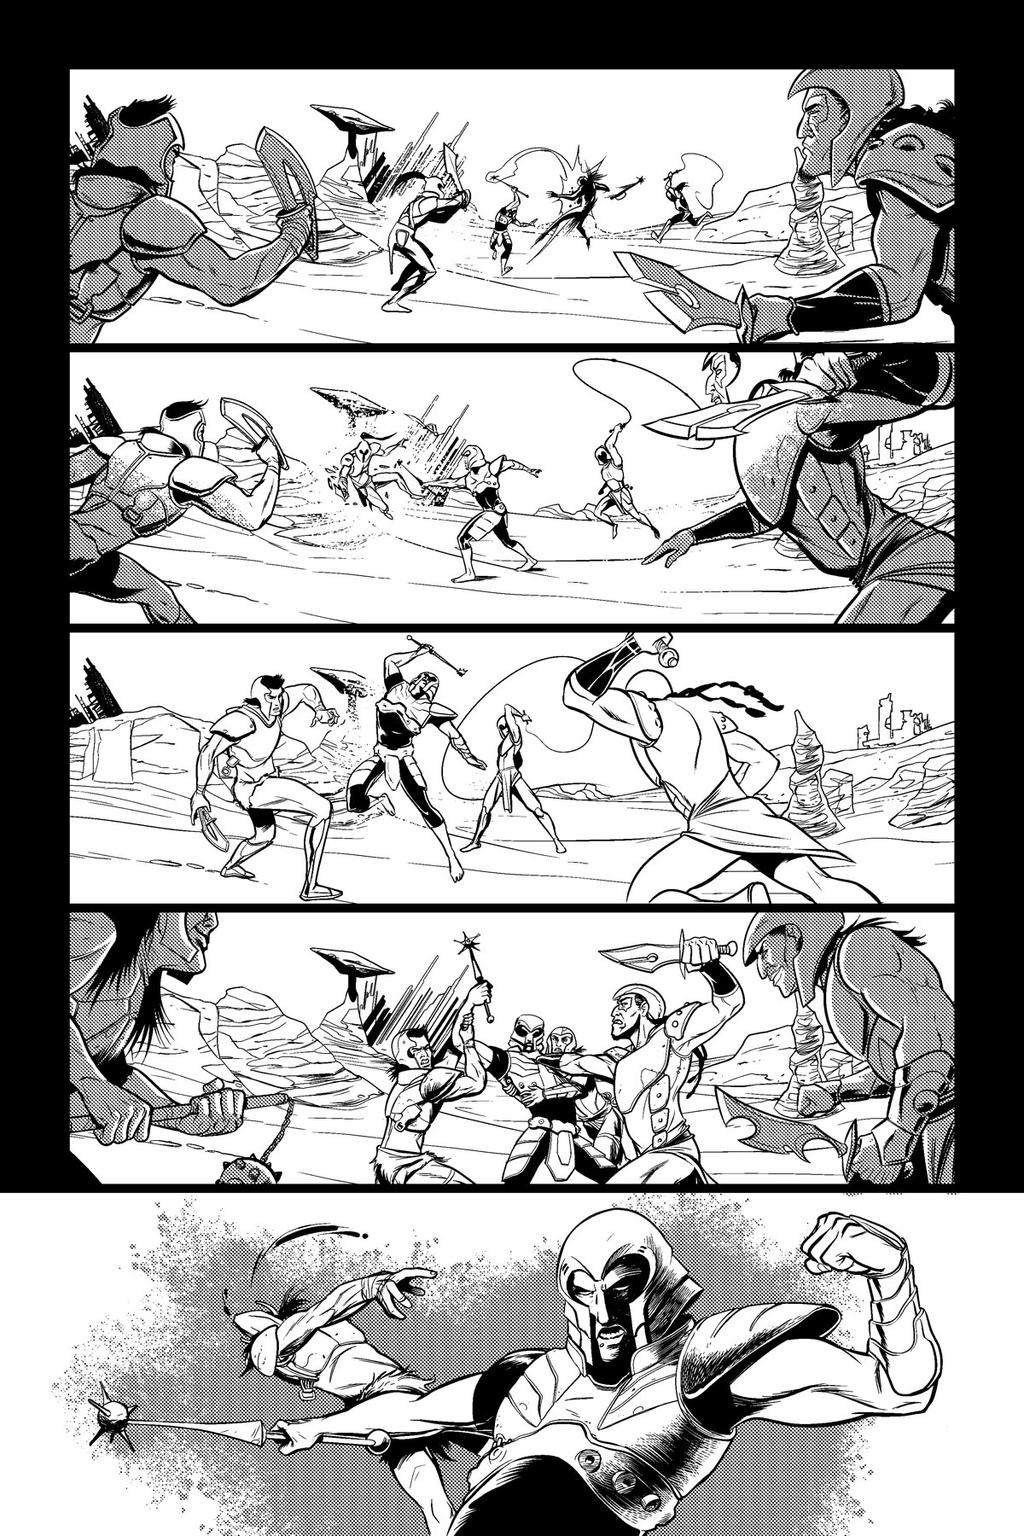 Remastered Page.